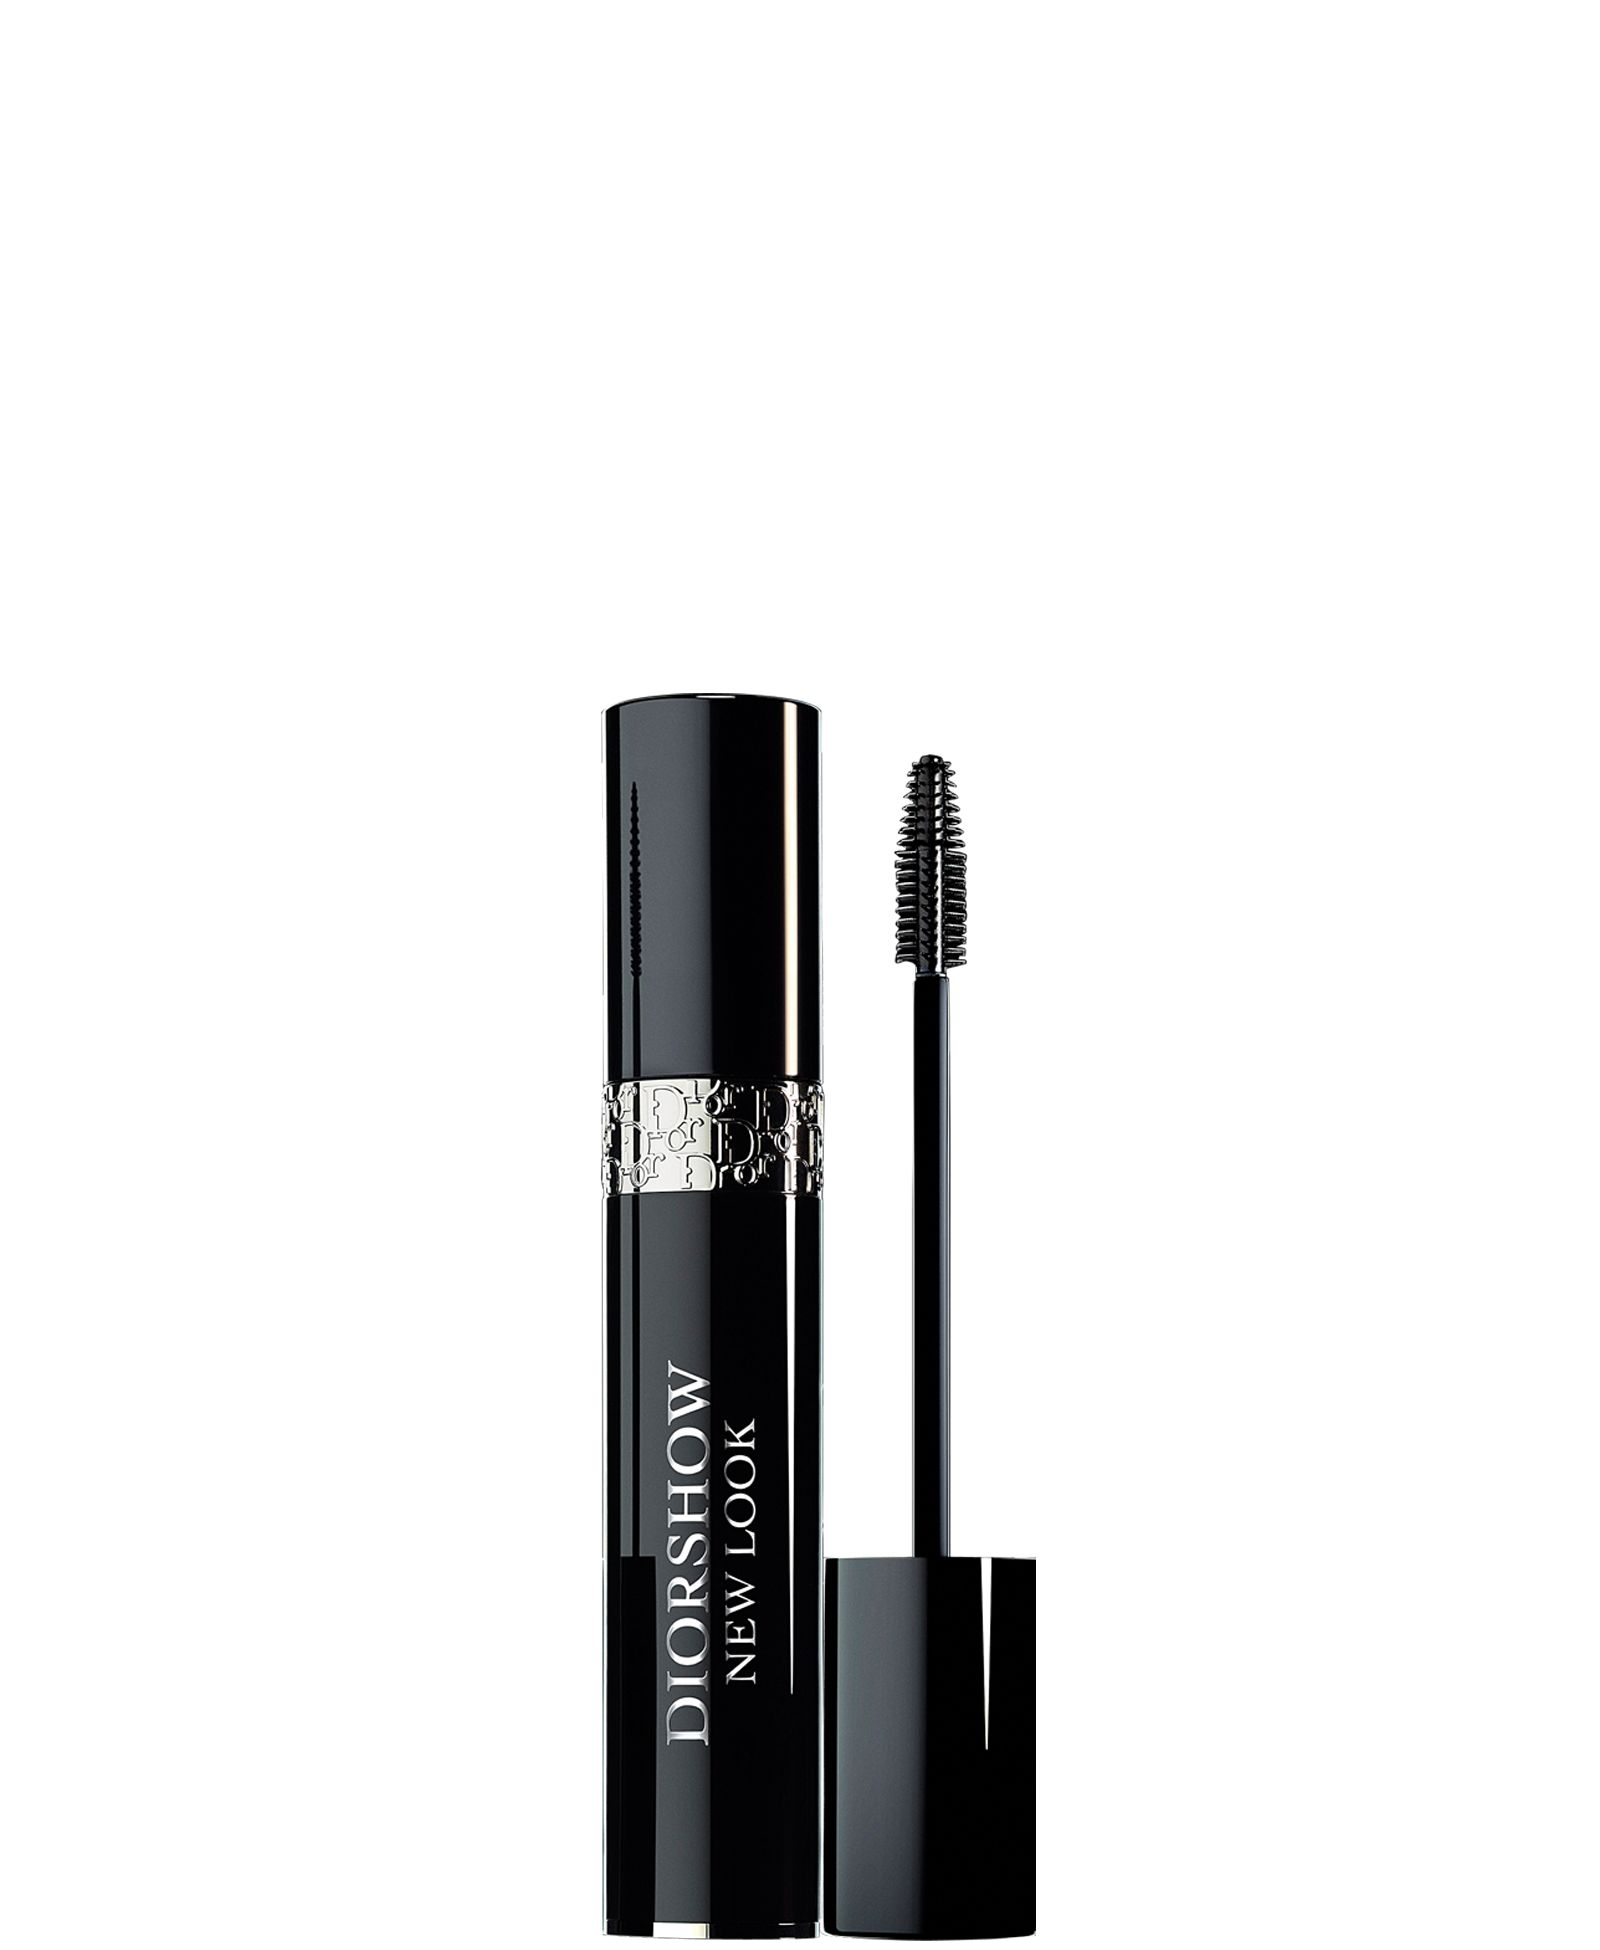 New Look Multi-dimensional Mascara